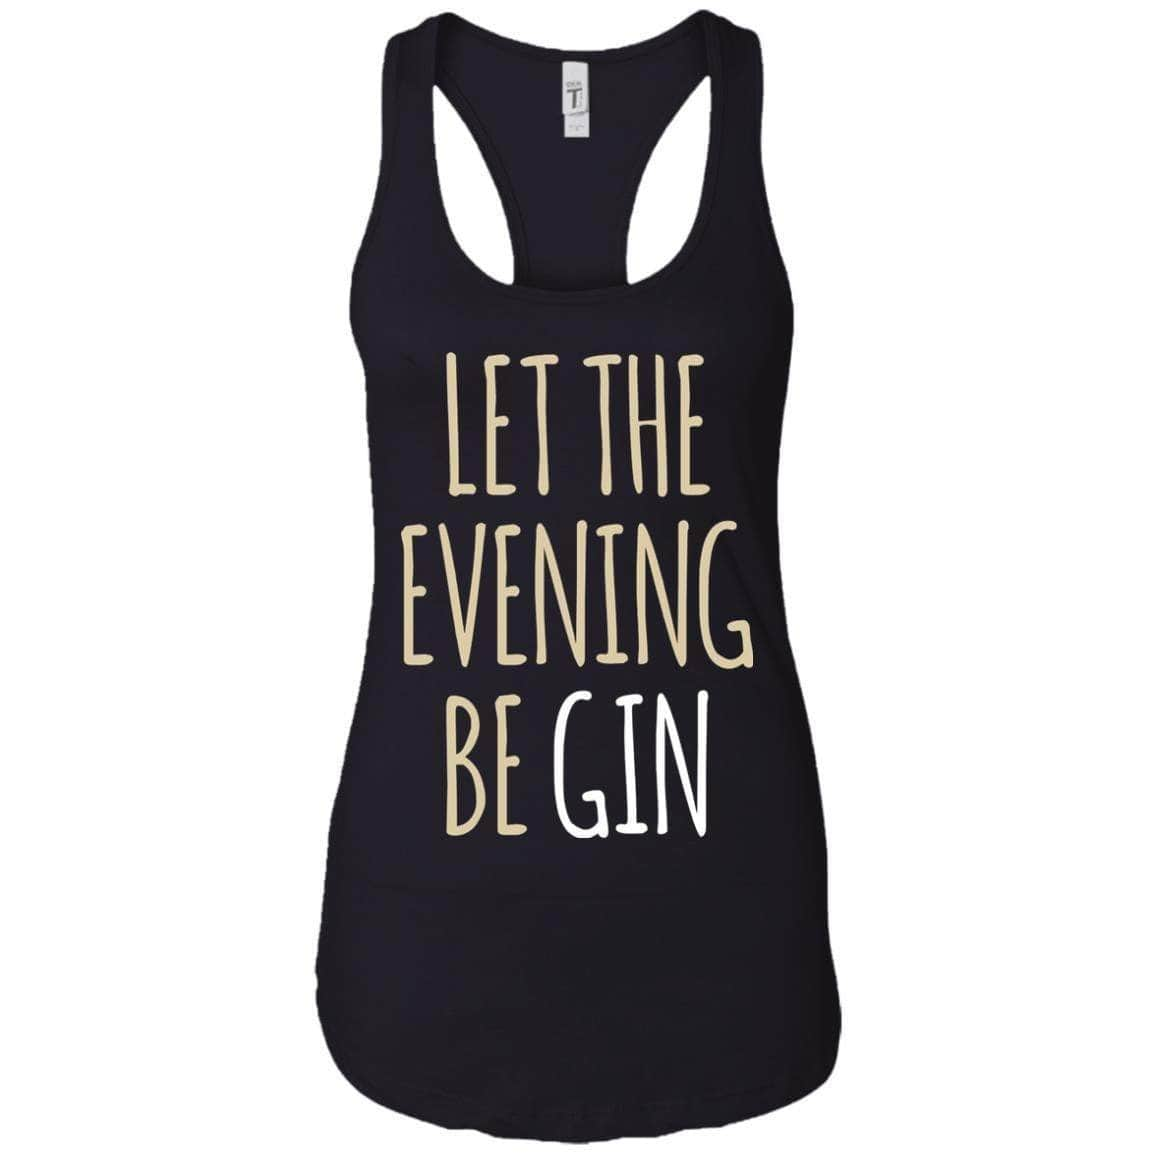 LET THE EVENING BE GIN WOMEN'S RACERBACK TANK